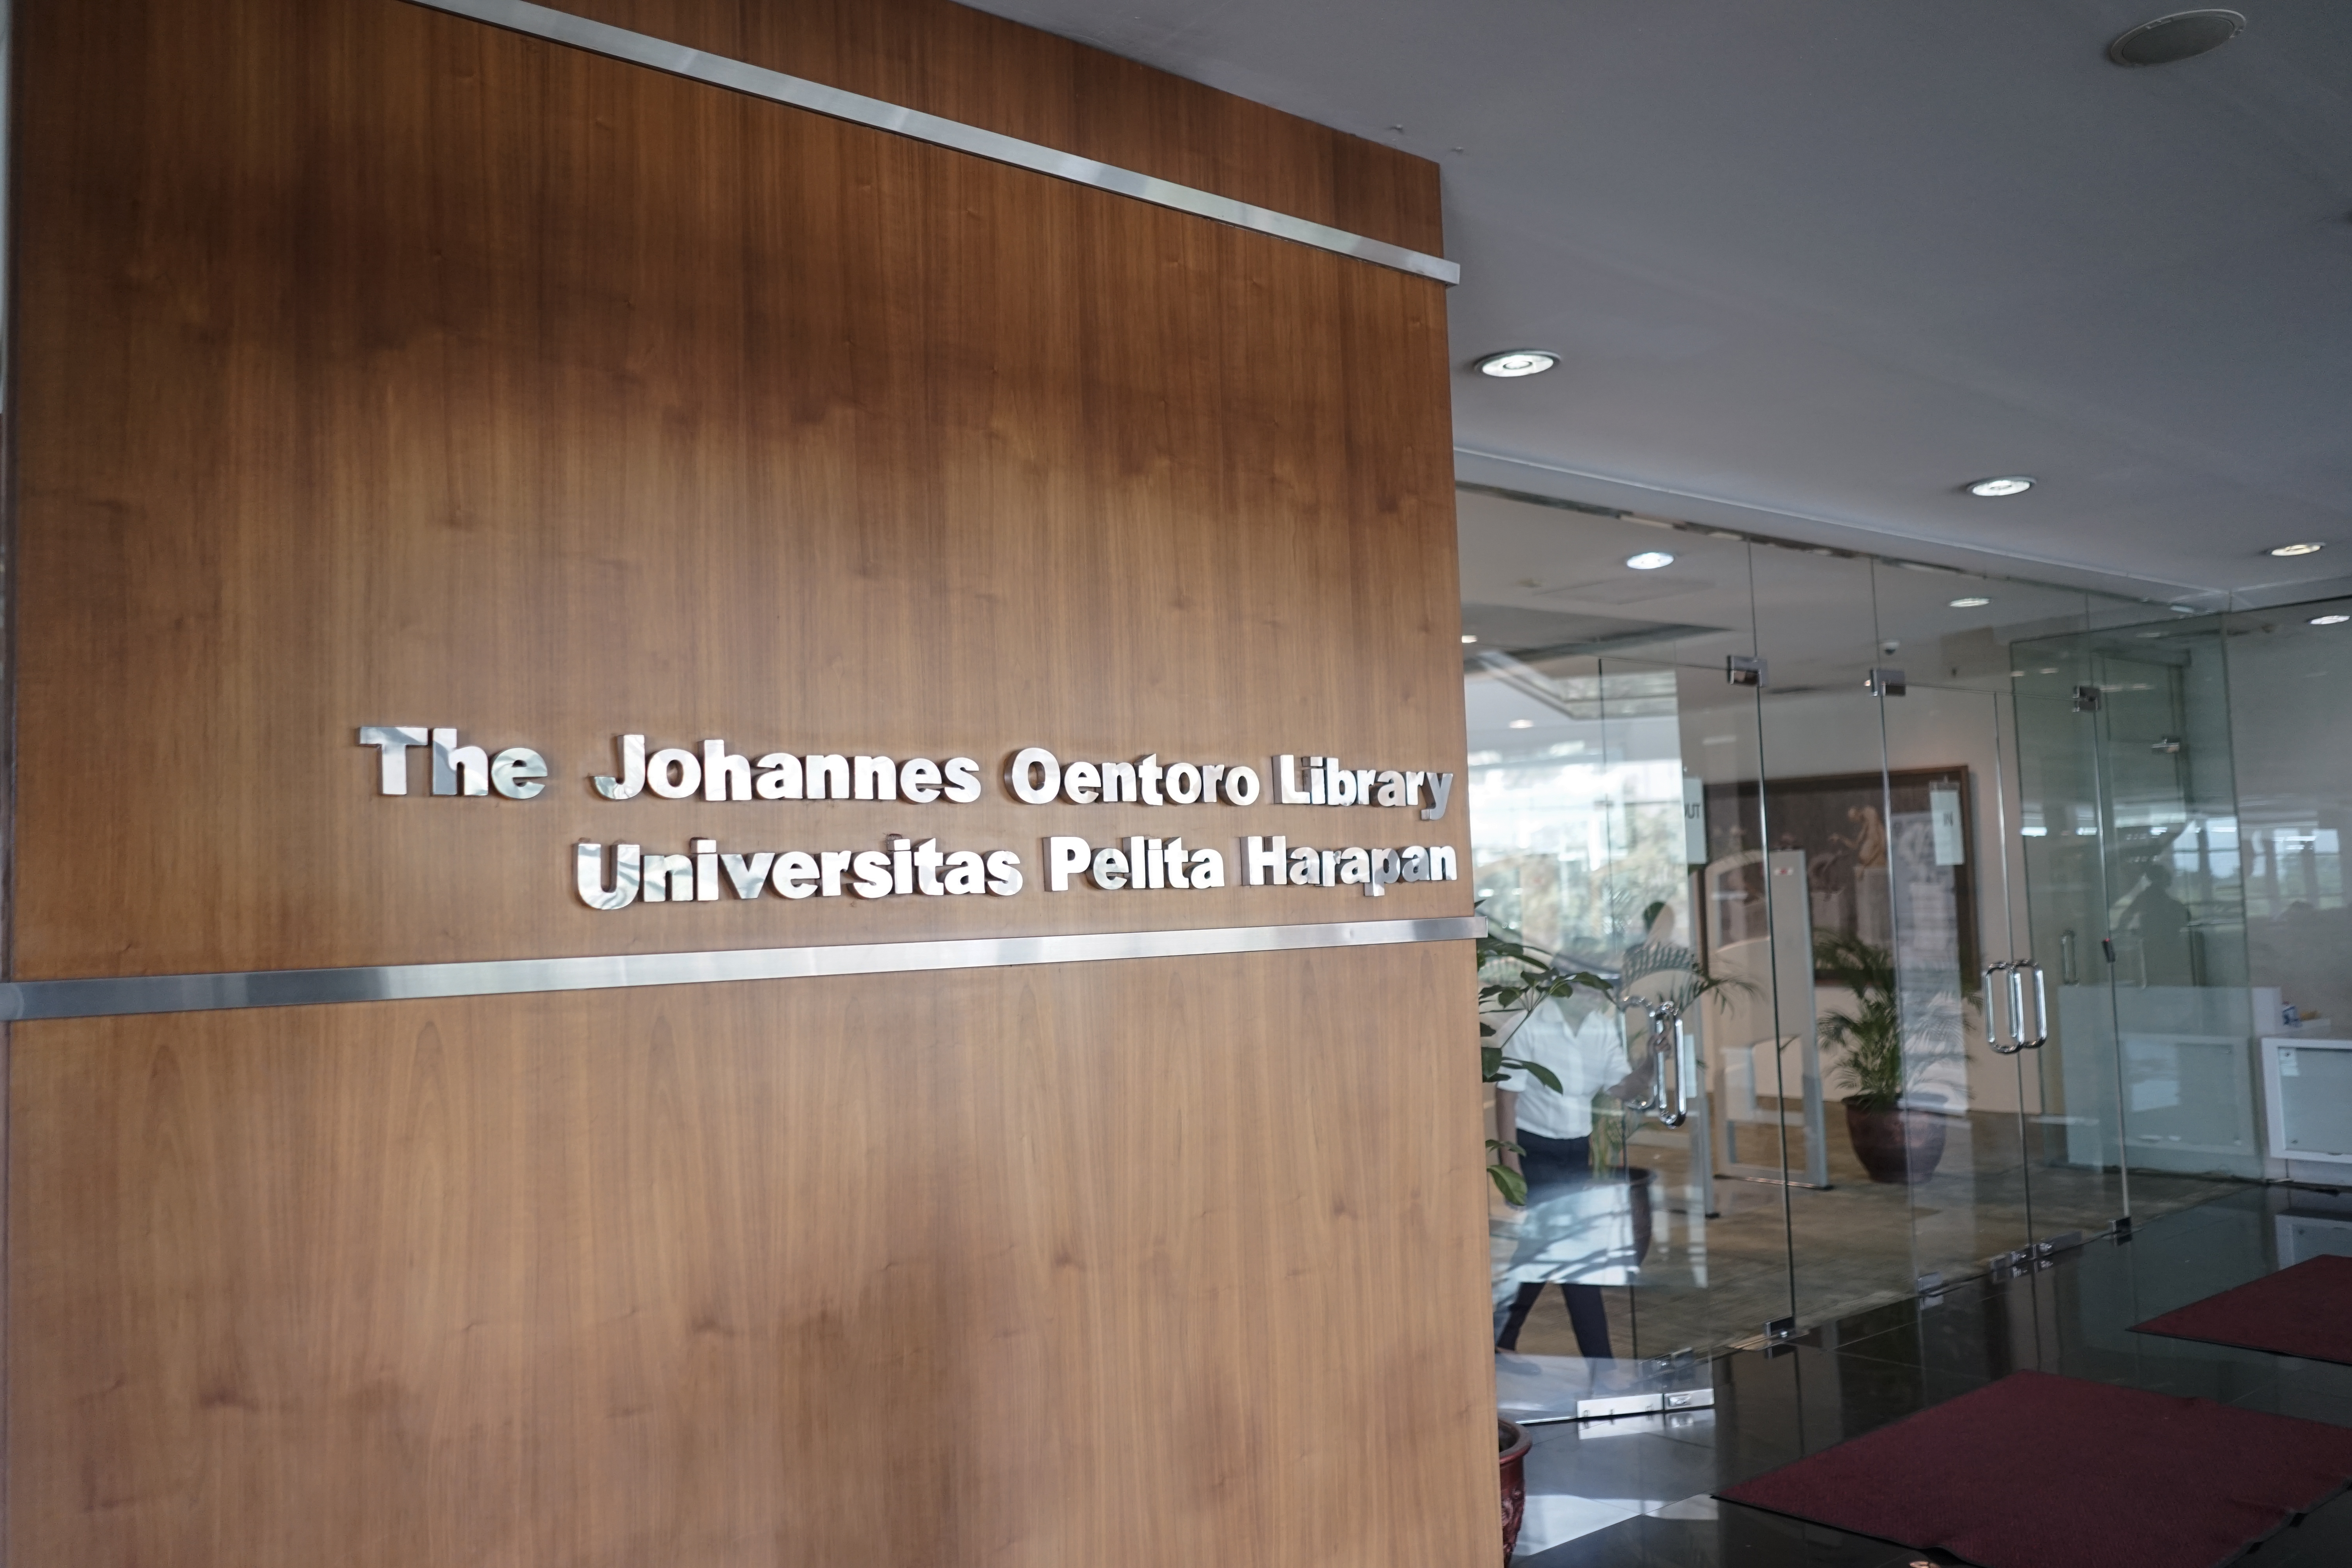 The Johannes Oentoro Library